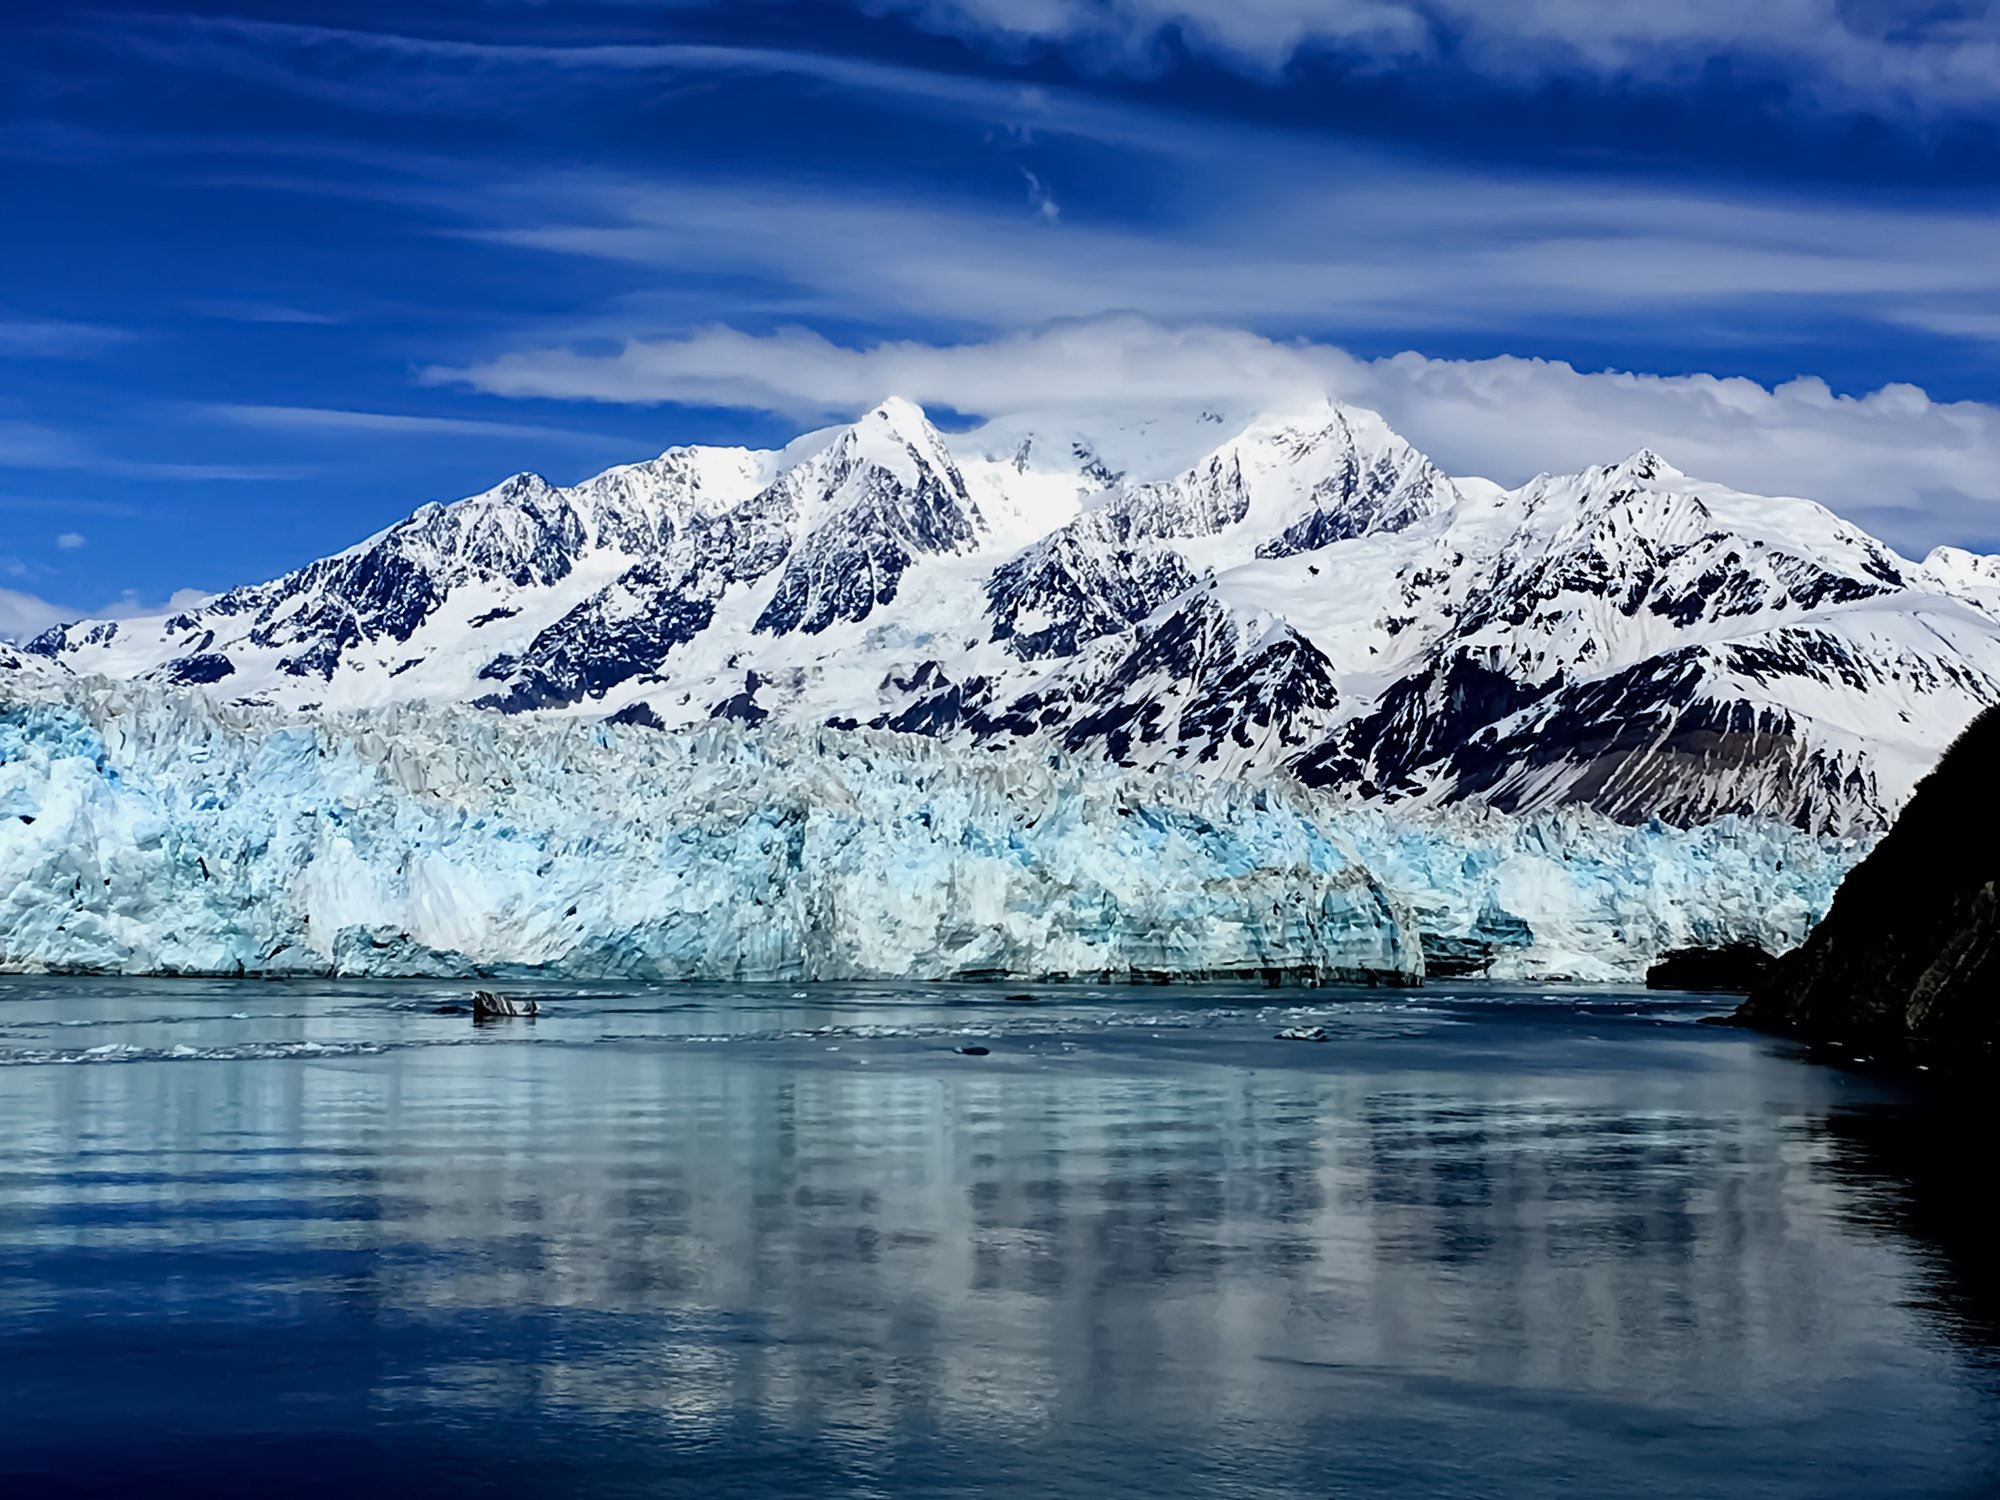 Hubbard Glacier Alaska, most sprawling American cities